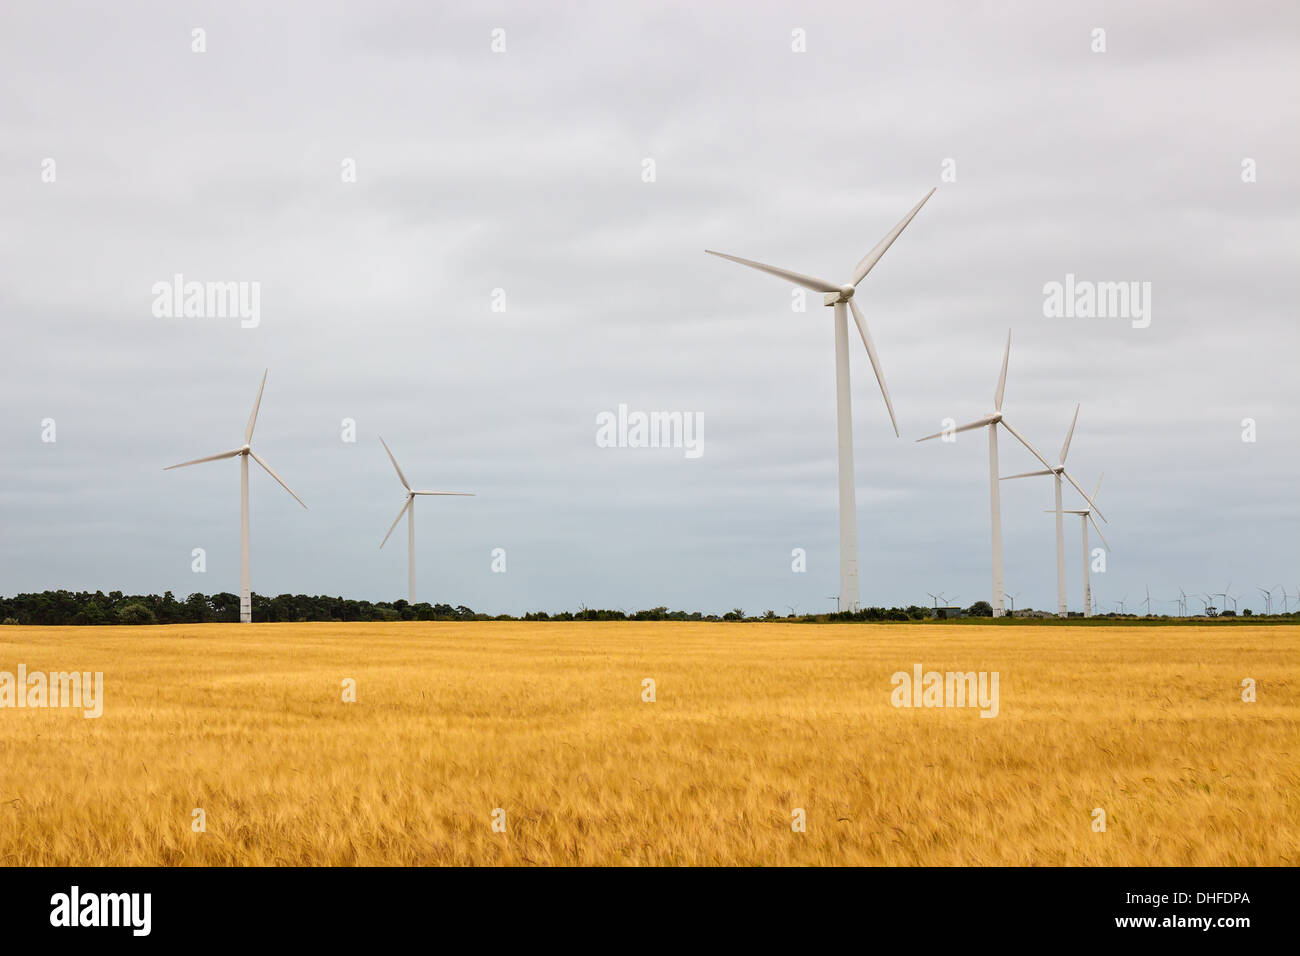 Wind turbines in a yellow field, source of alternative energy. - Stock Image